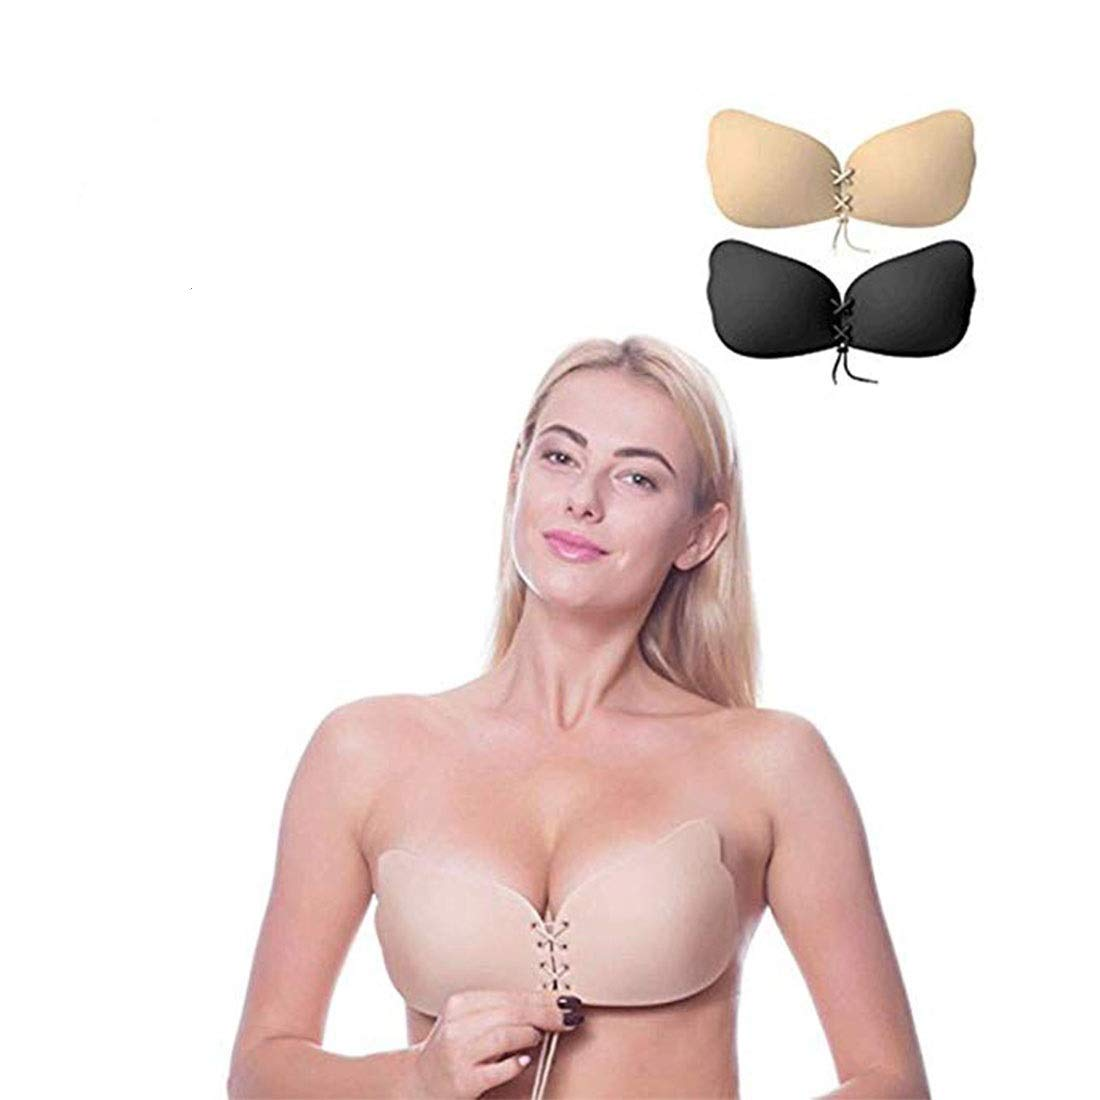 Invisible Adhesive Bra 2 Pack Sticky Bra Reusable Push up Invisible Women Bra Drawstring Silicone Bras